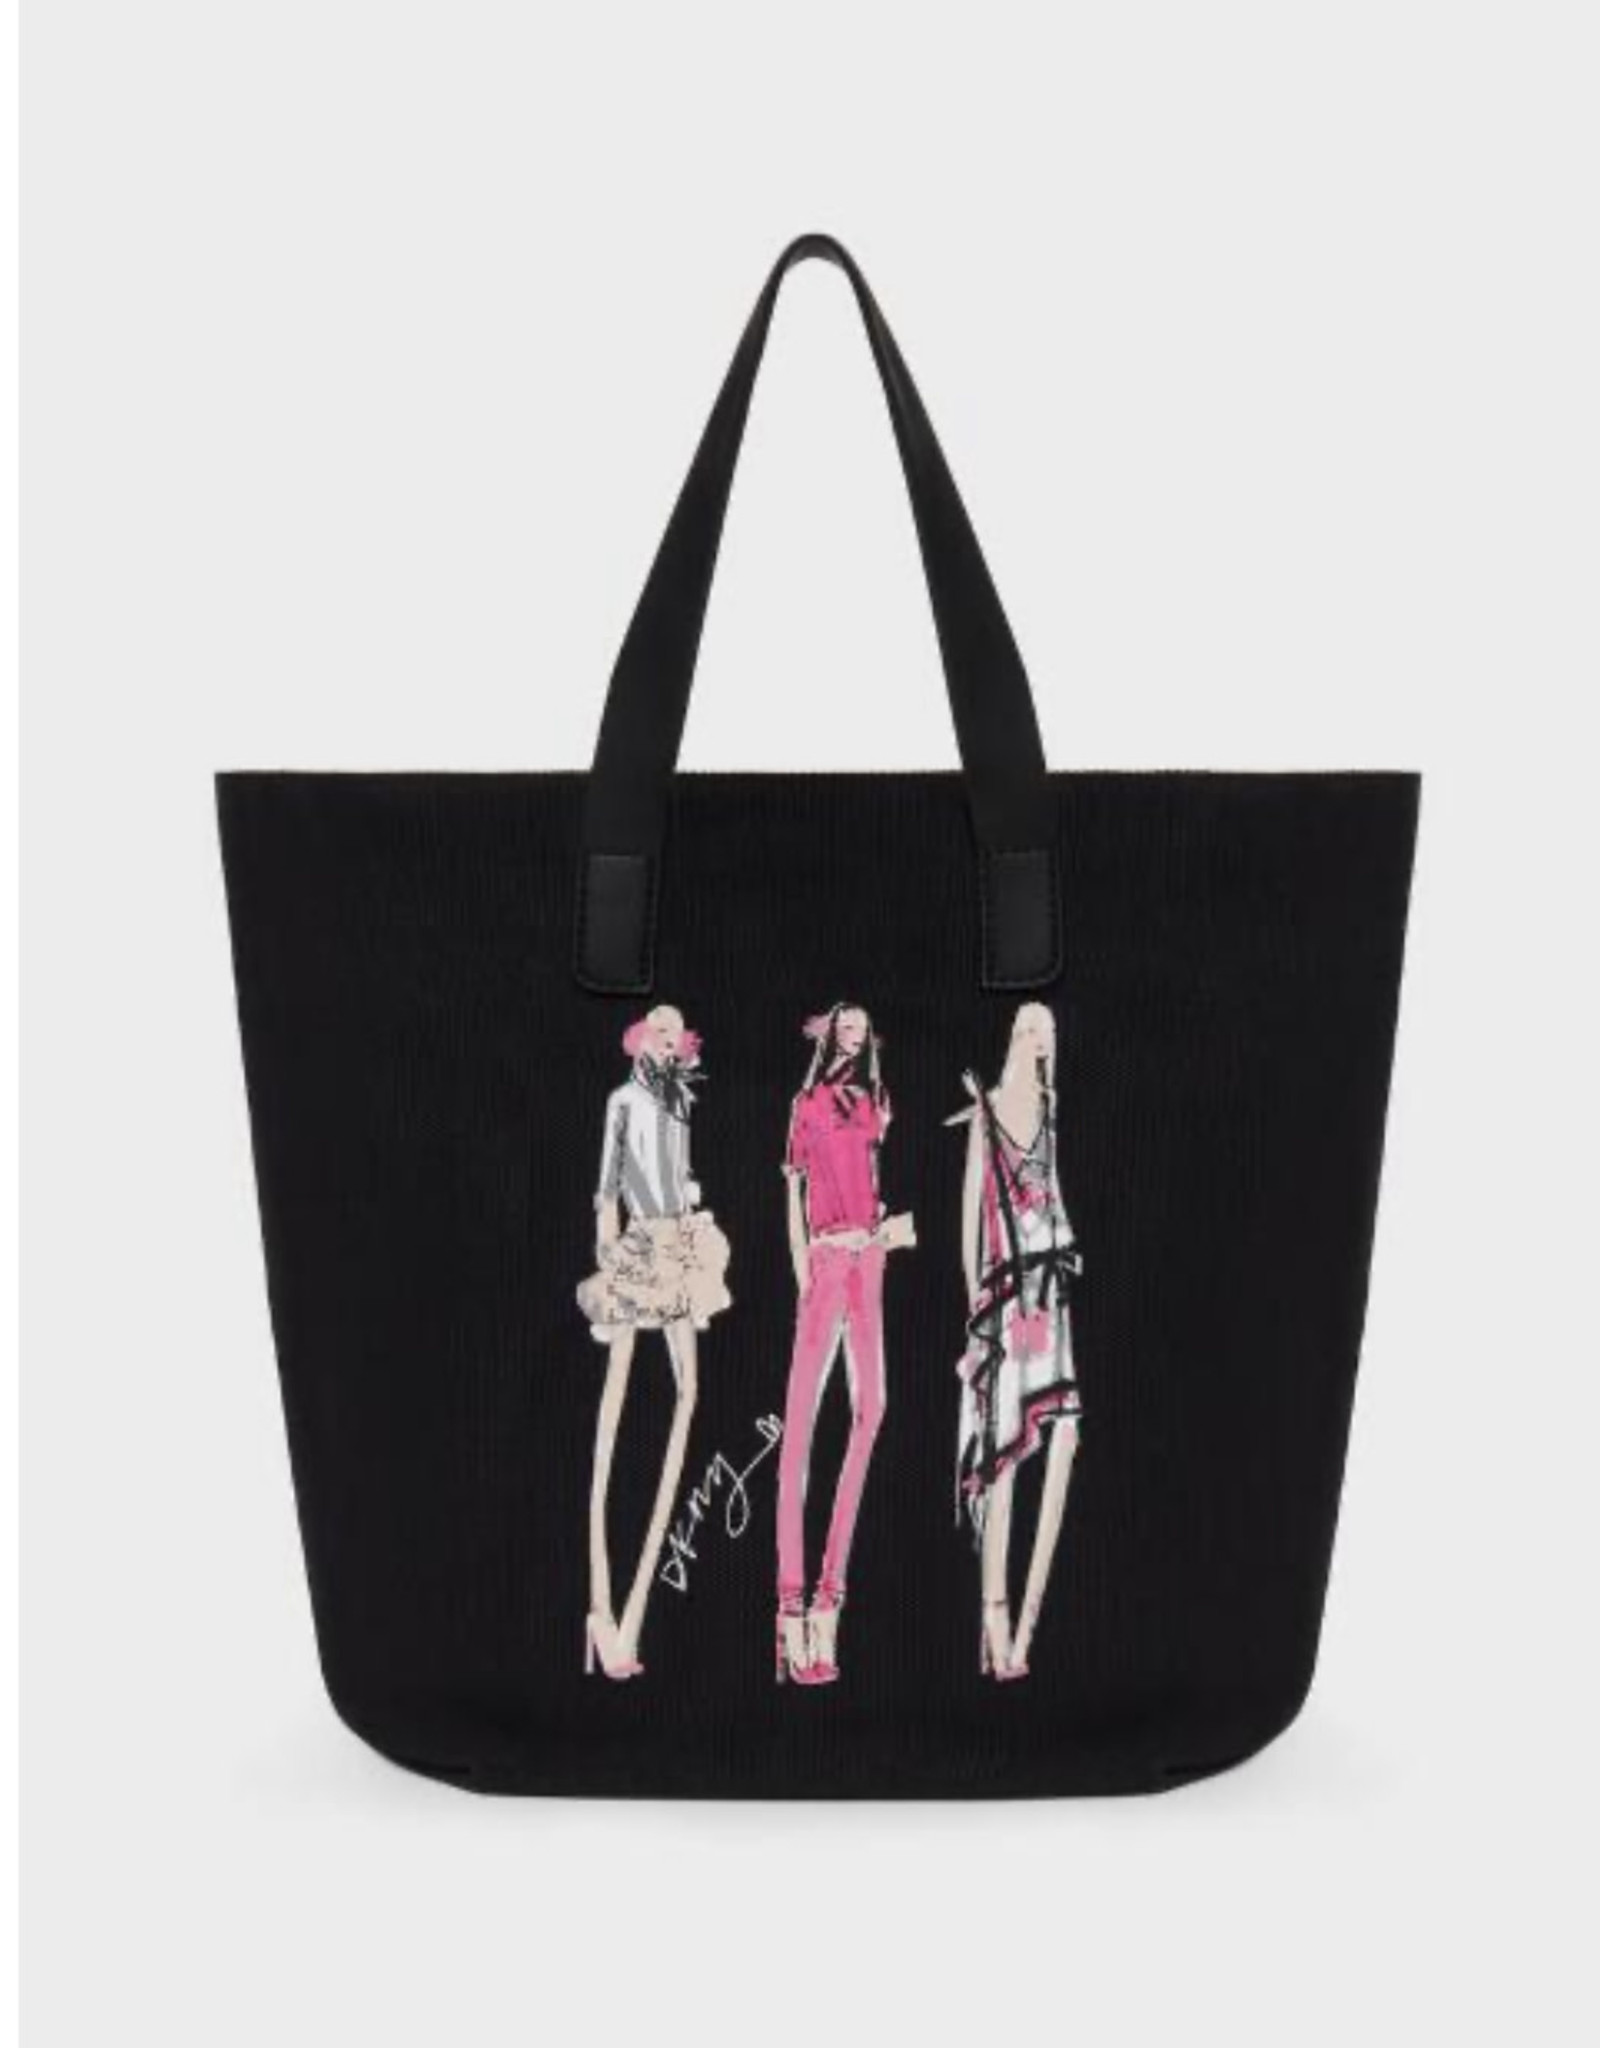 DKNY DKNY Tote Corrie Sketch Girl w/ Leather Pouch